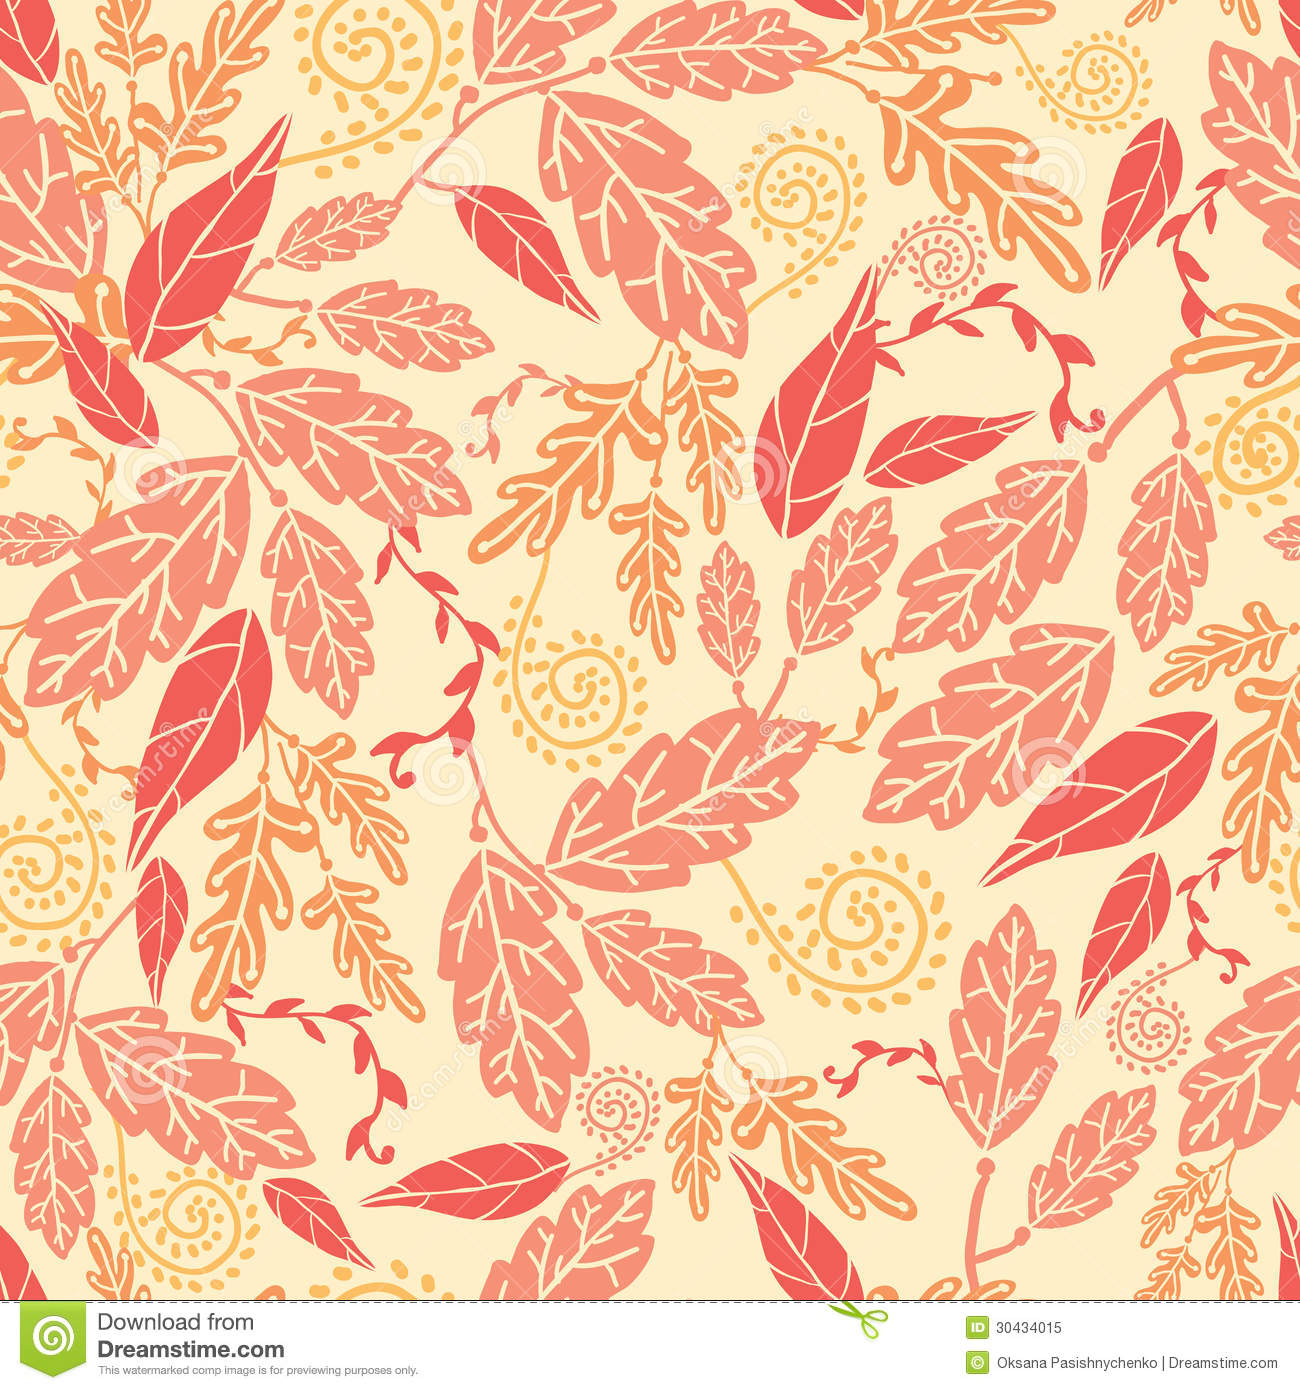 The Yellow Wallpaper Falling Action Autumn Leaves Seamless Pattern Background Stock Vector